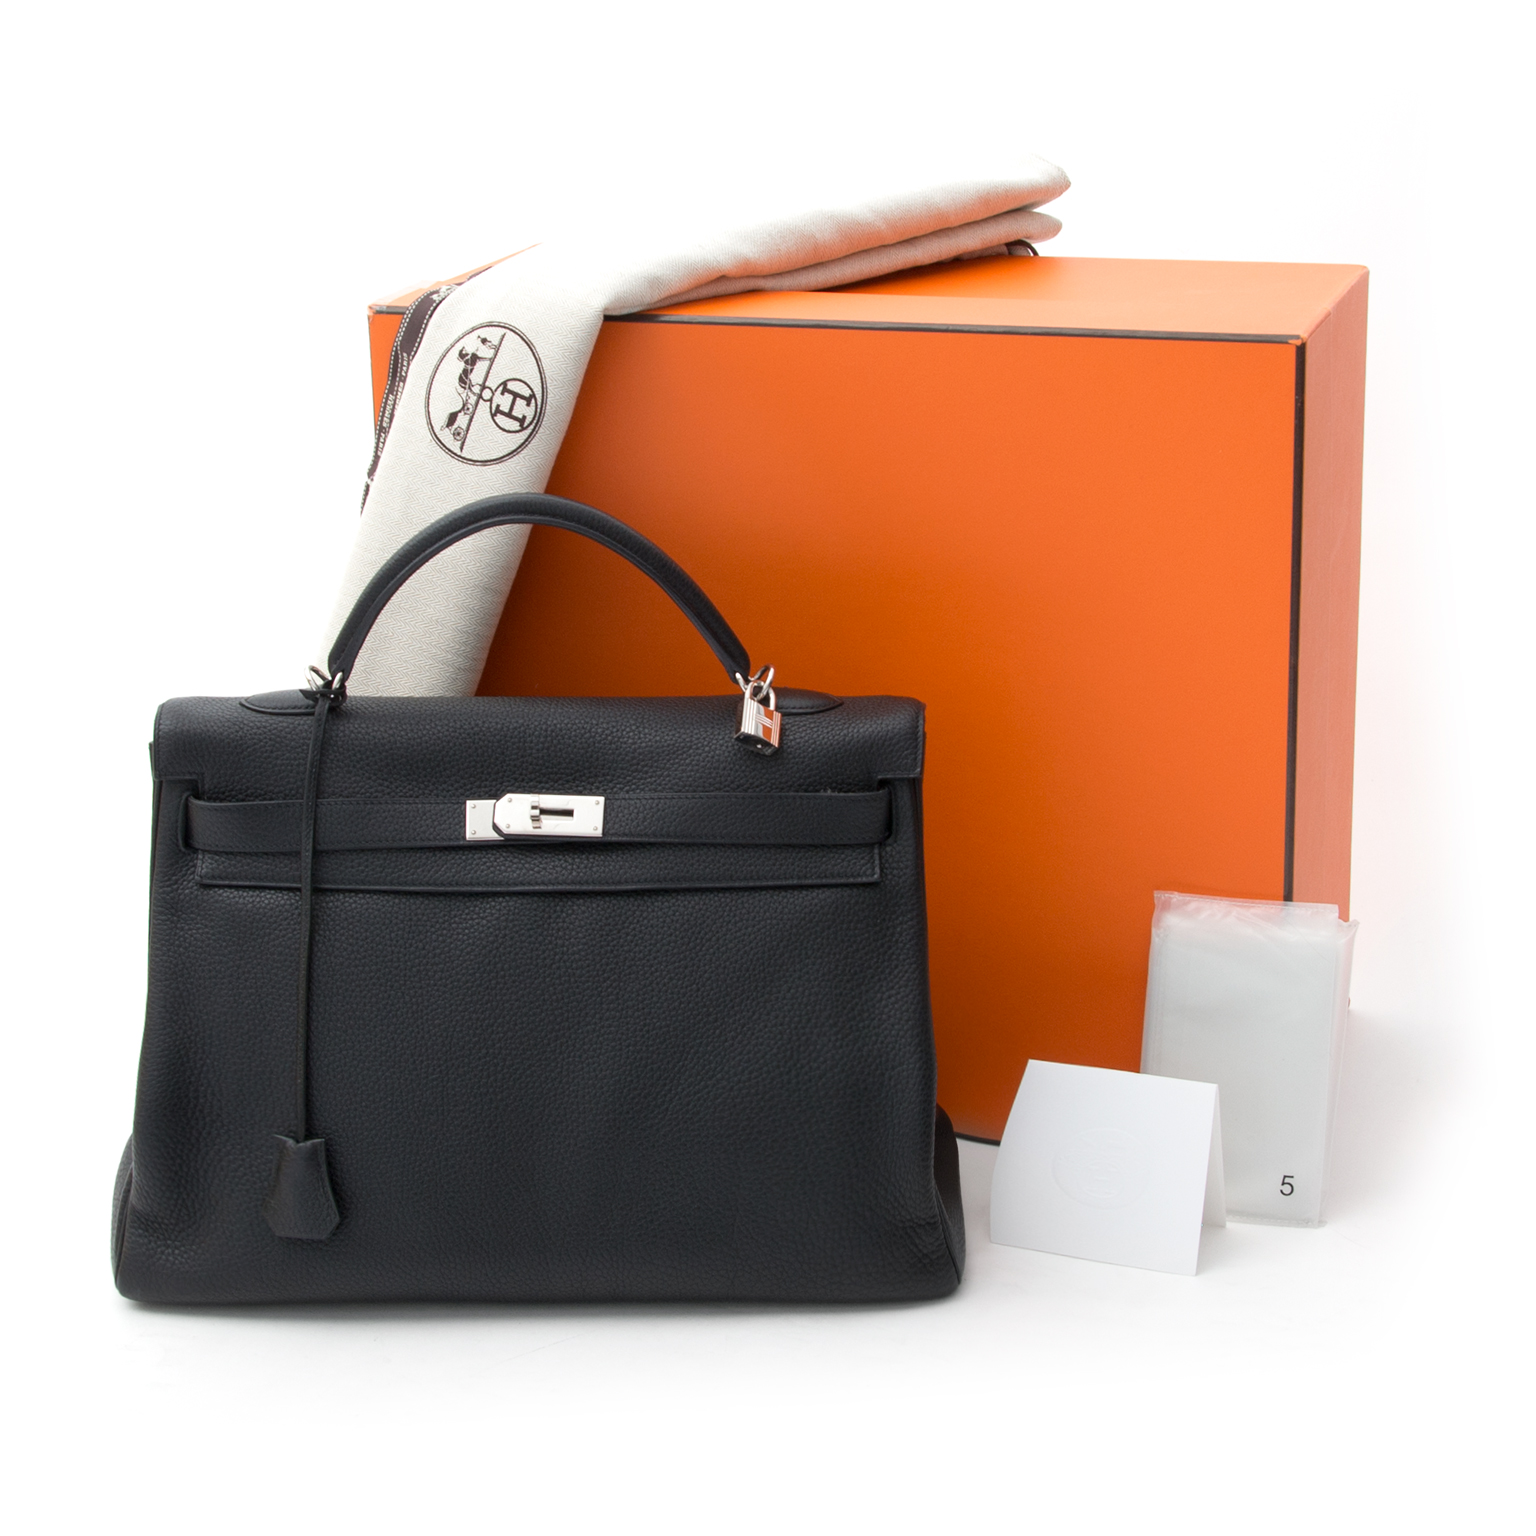 486c348a40 ... where can i buy bag complex hermes constance waiting list koop veilig  online aan de beste